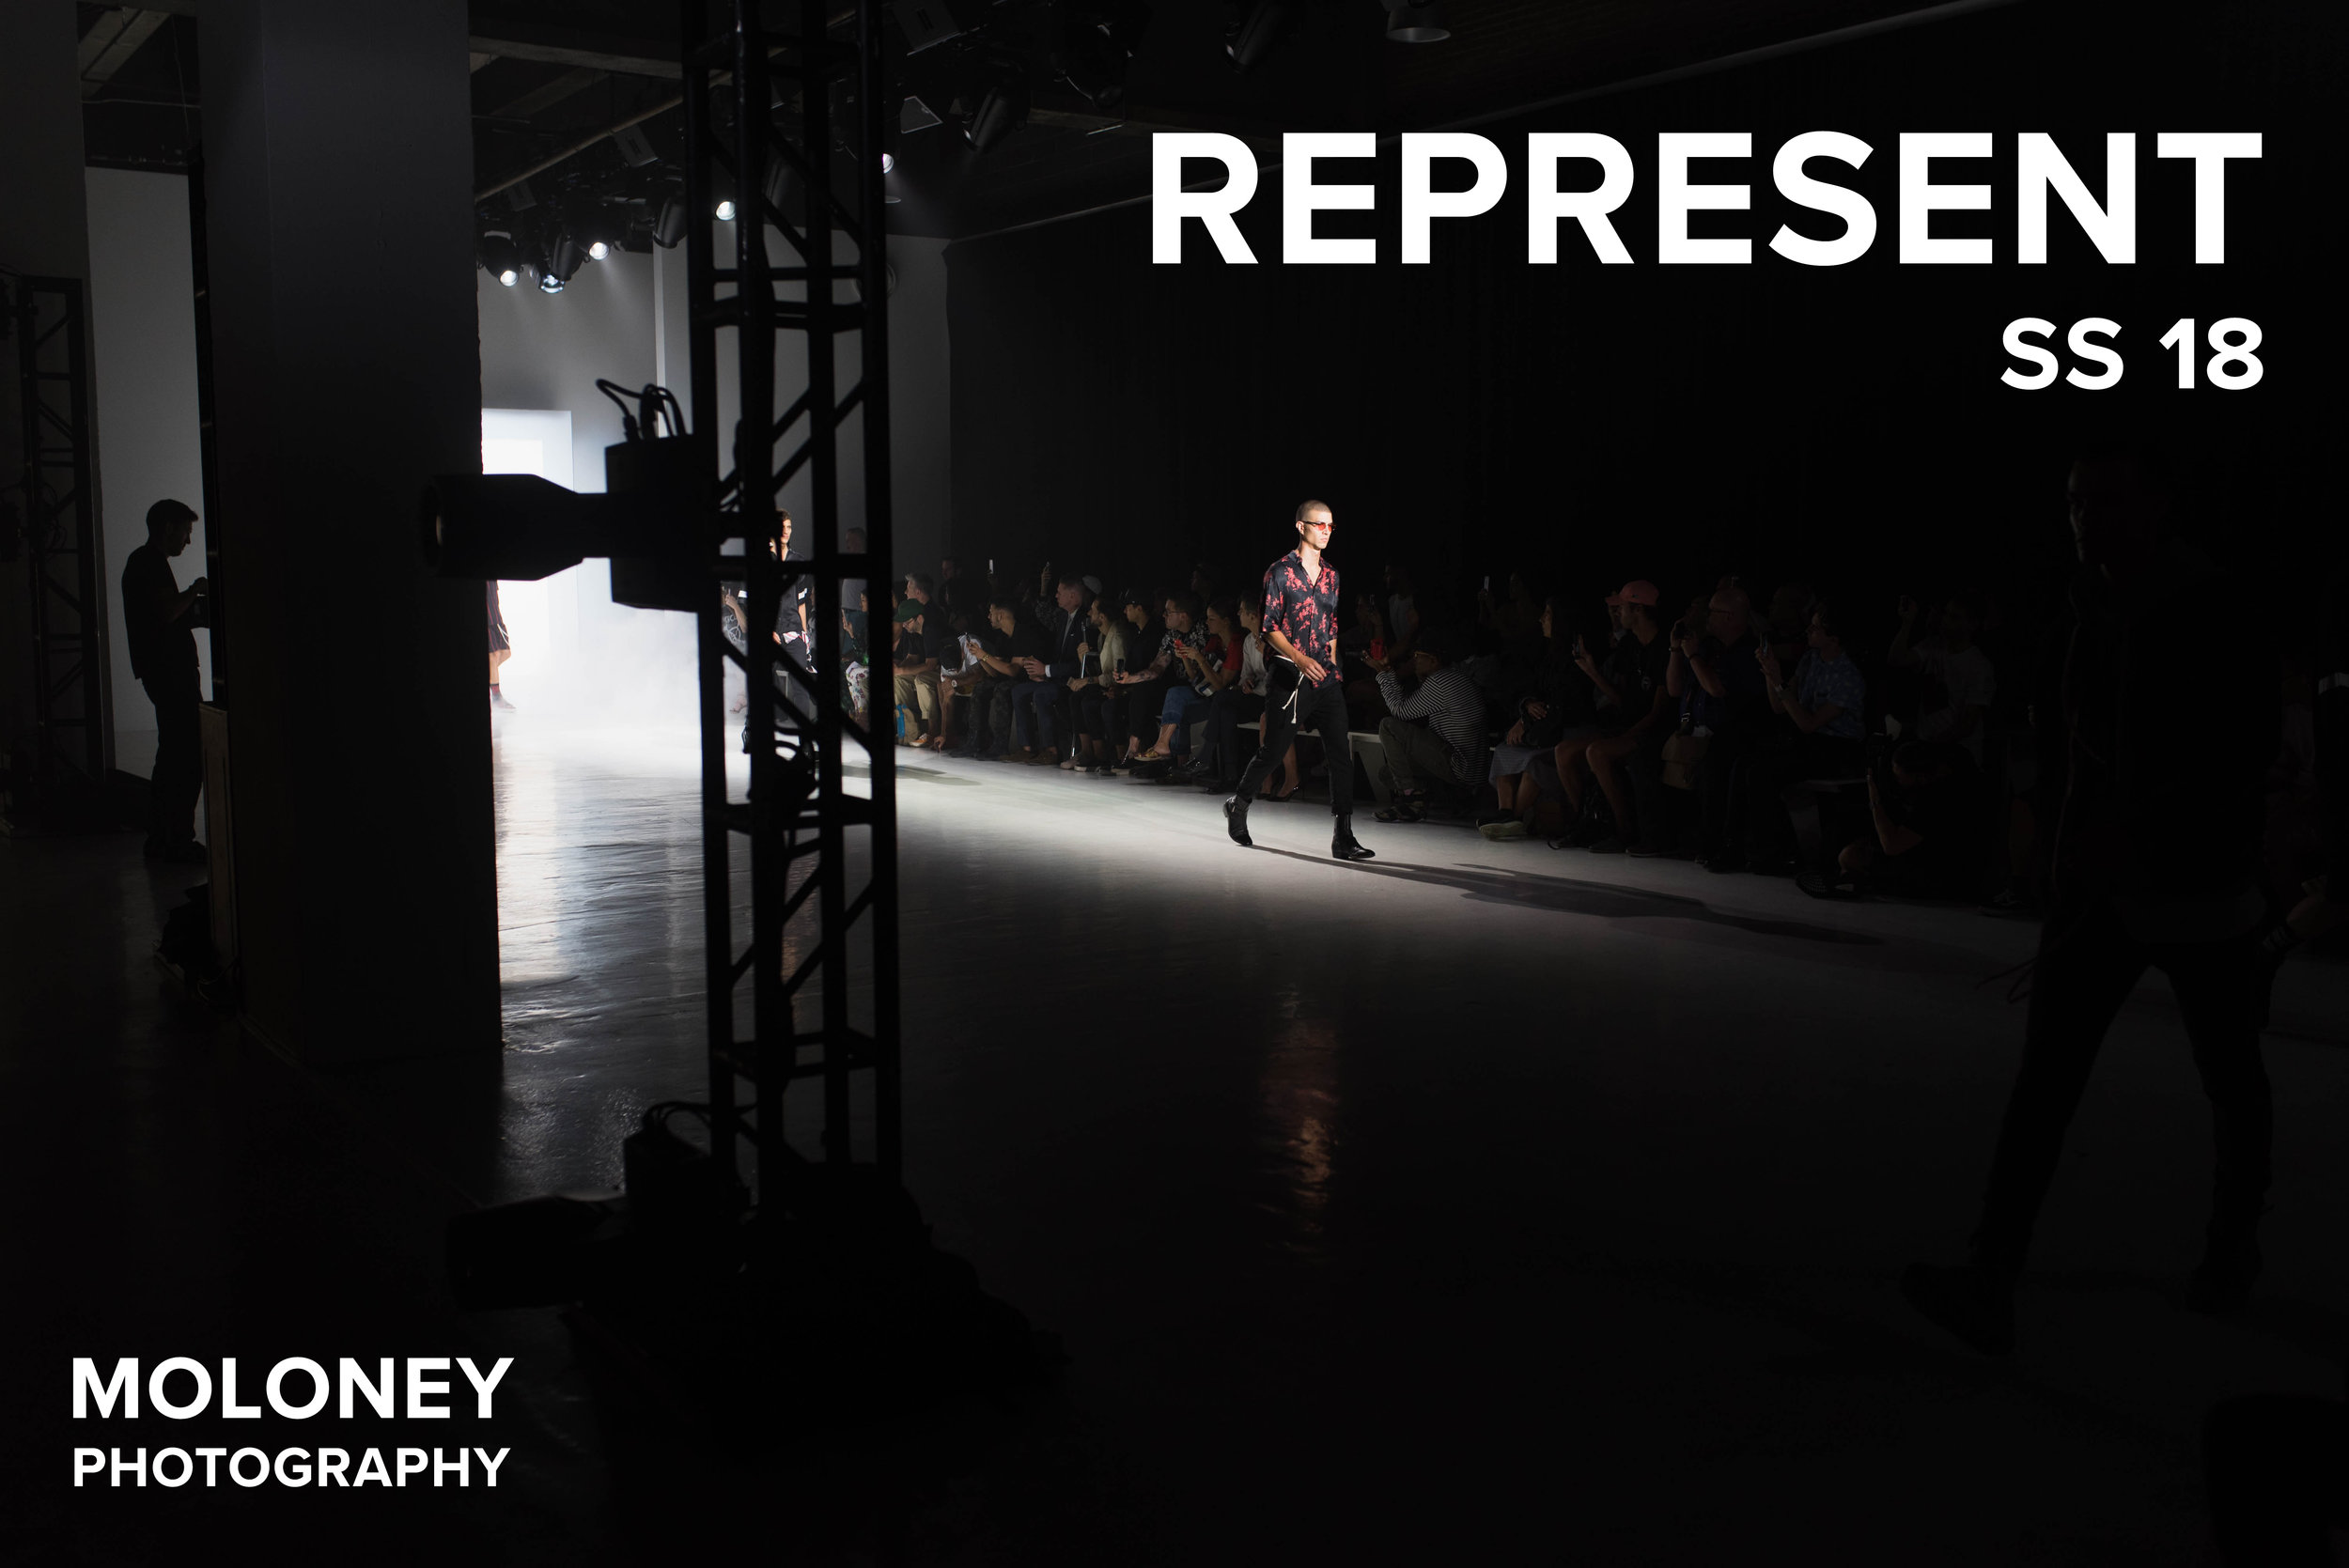 Represent SS 18 - Moloney Photography.jpg